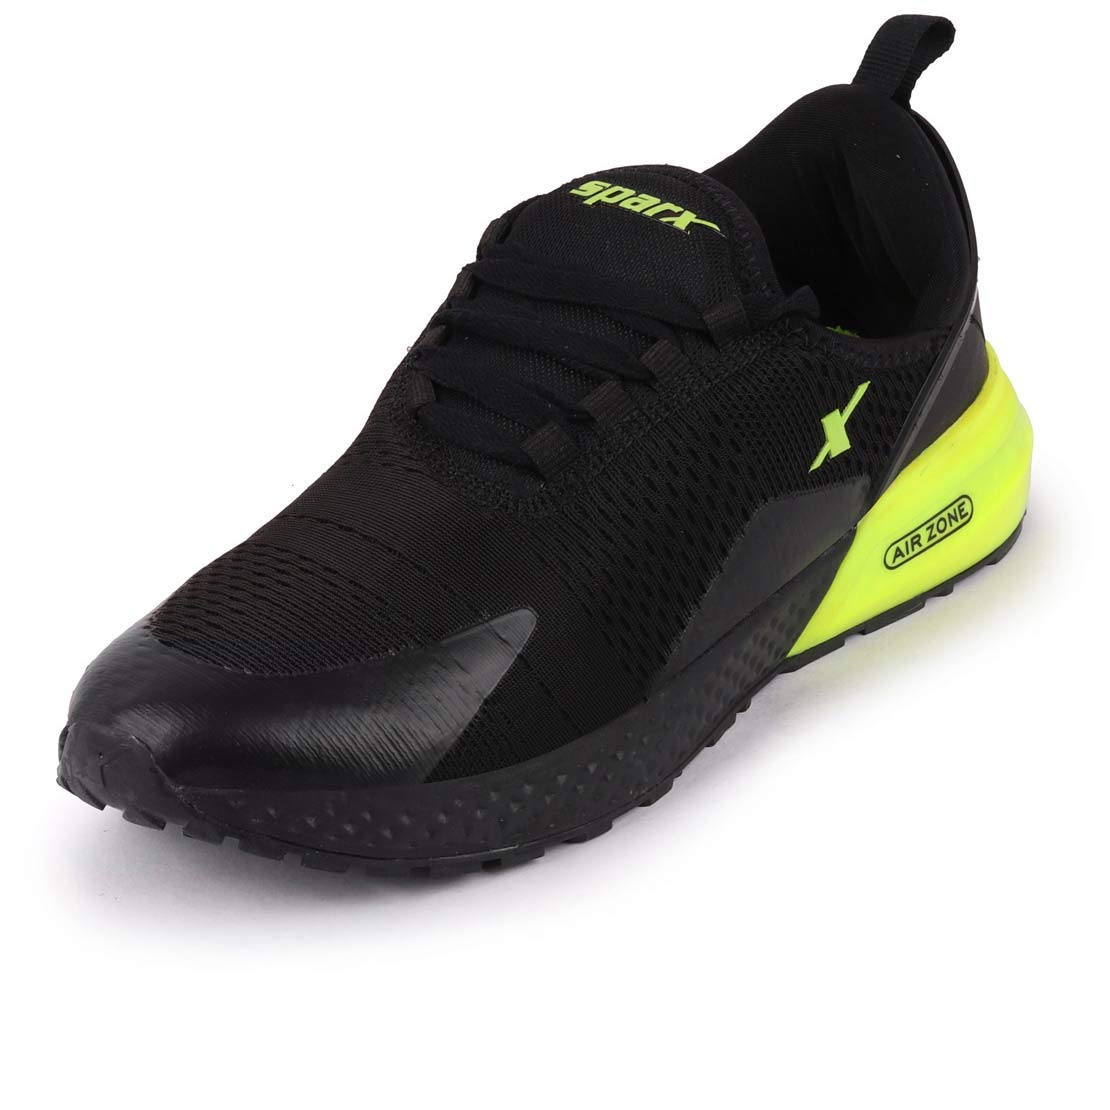 Sparx Men's Sports Running Shoes-SM-459